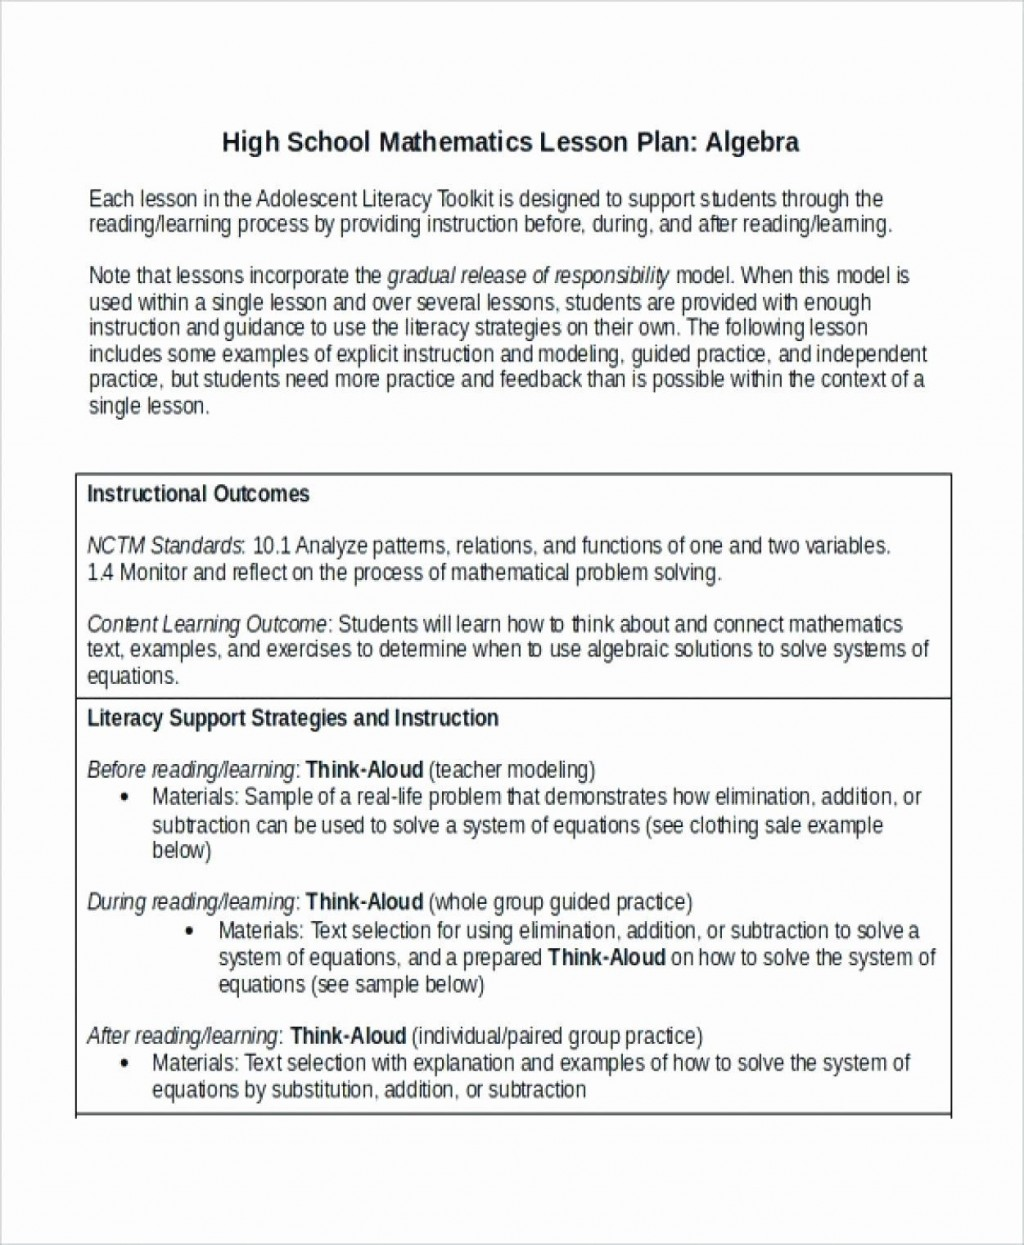 000 Archaicawful Lesson Plan Template High School Math Inspiration  Example For FreeLarge